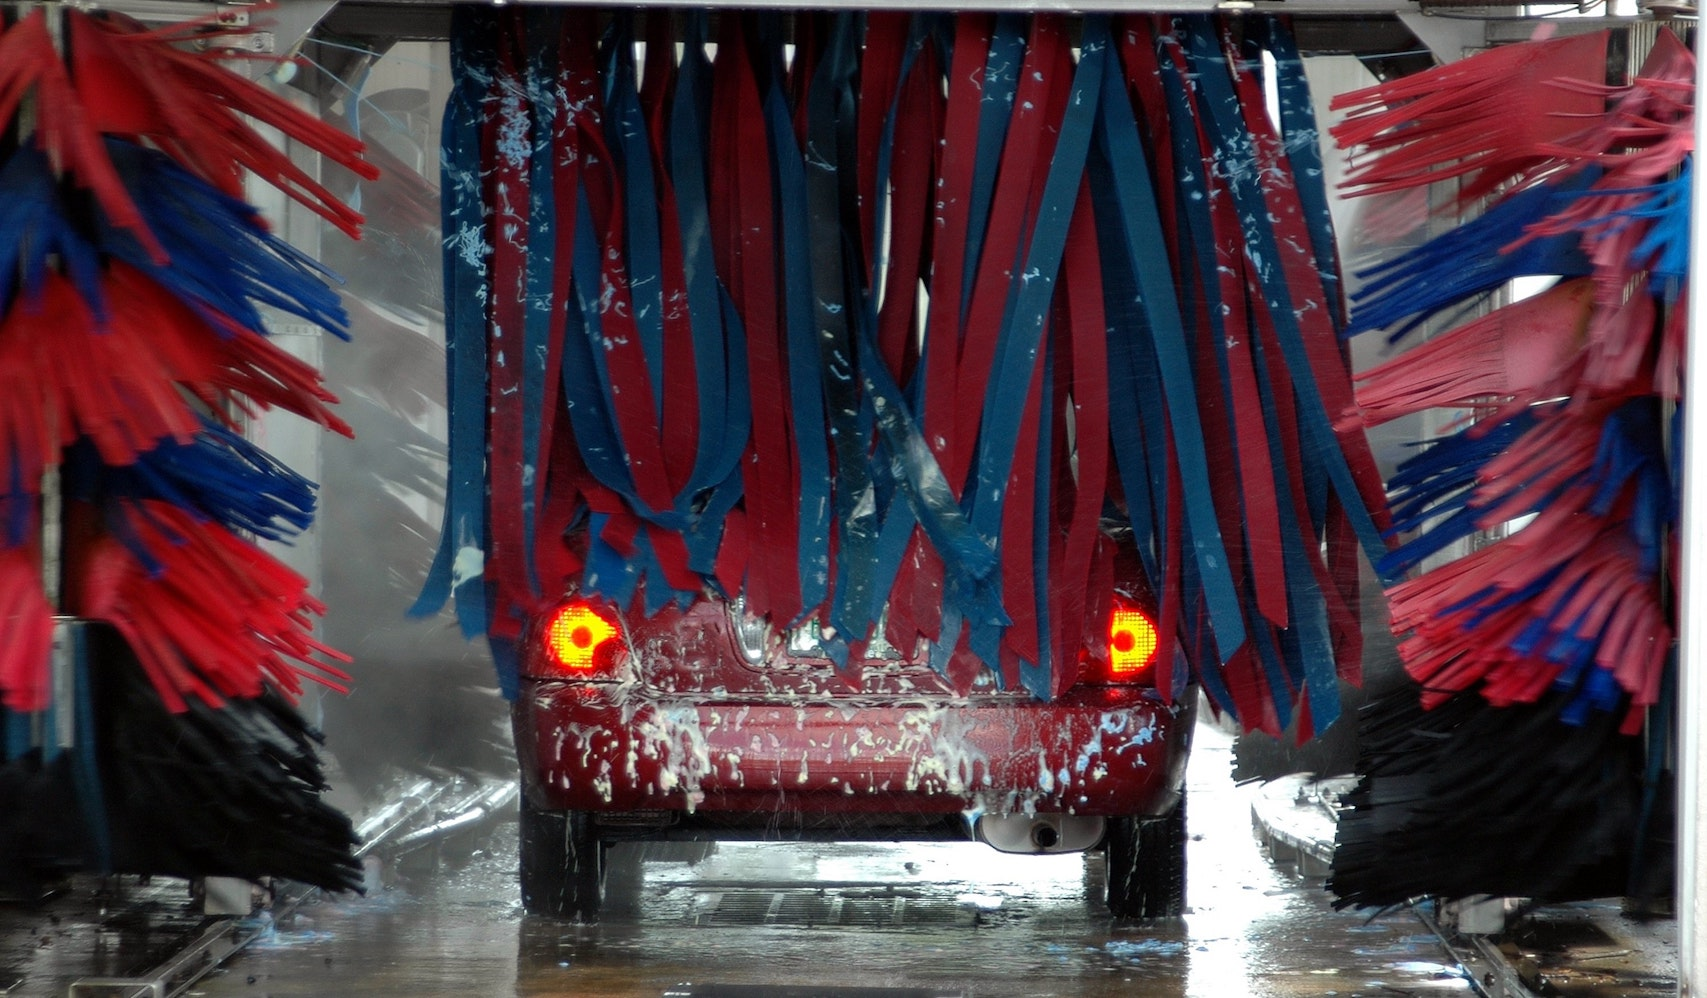 red-car-in-carwash_how-to-ship-your-car.jpg